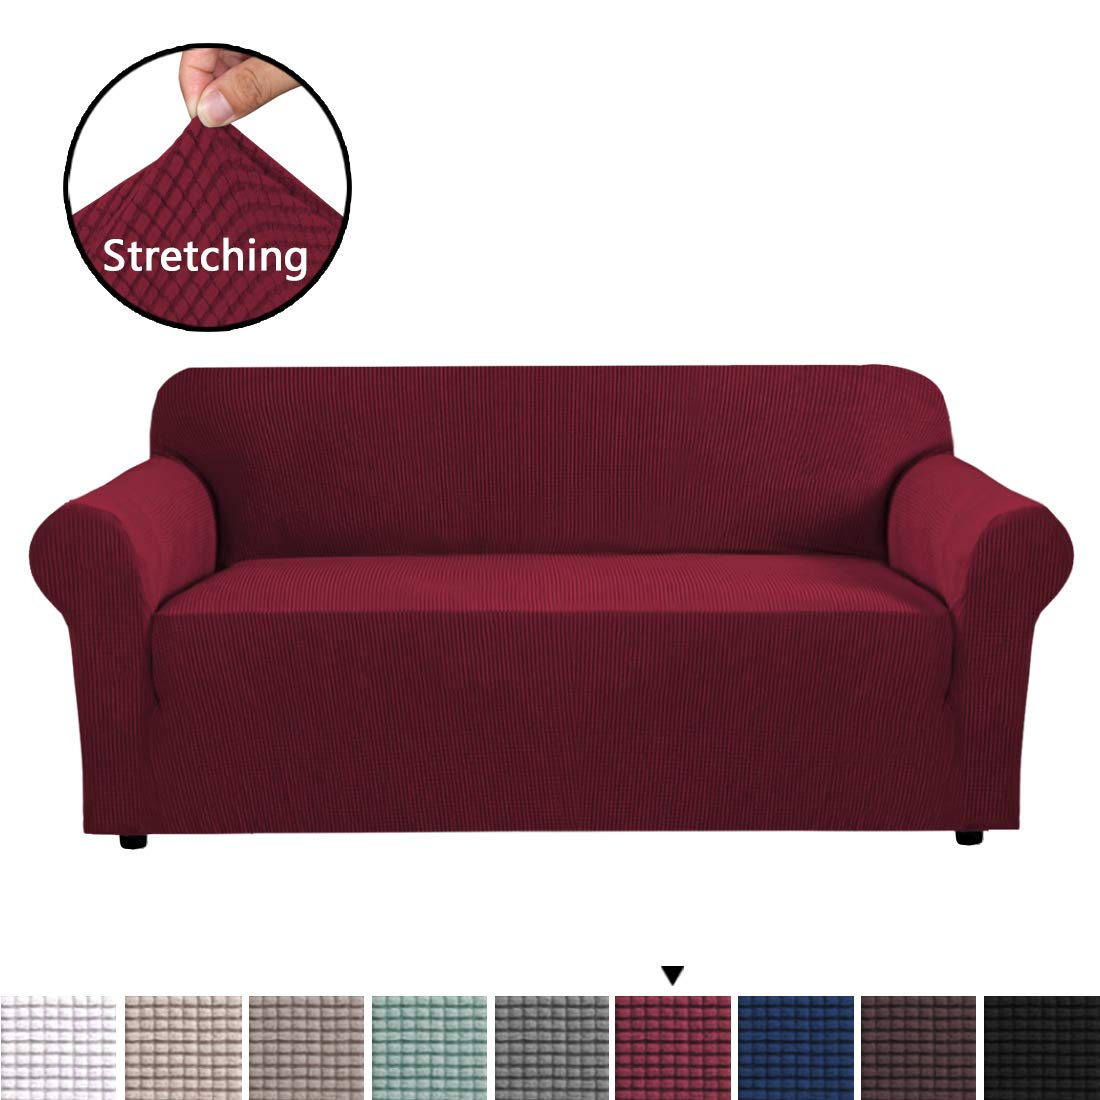 H.VERSAILTEX Stretch Slipcovers, Sofa Covers for 3 Cushion Couch, Sofa Covers for Living Room, Sofa Slipcover Furniture Protector 1 Piece Spandex Jacquard Fabric Small Checks (Sofa: Burgundy Red)